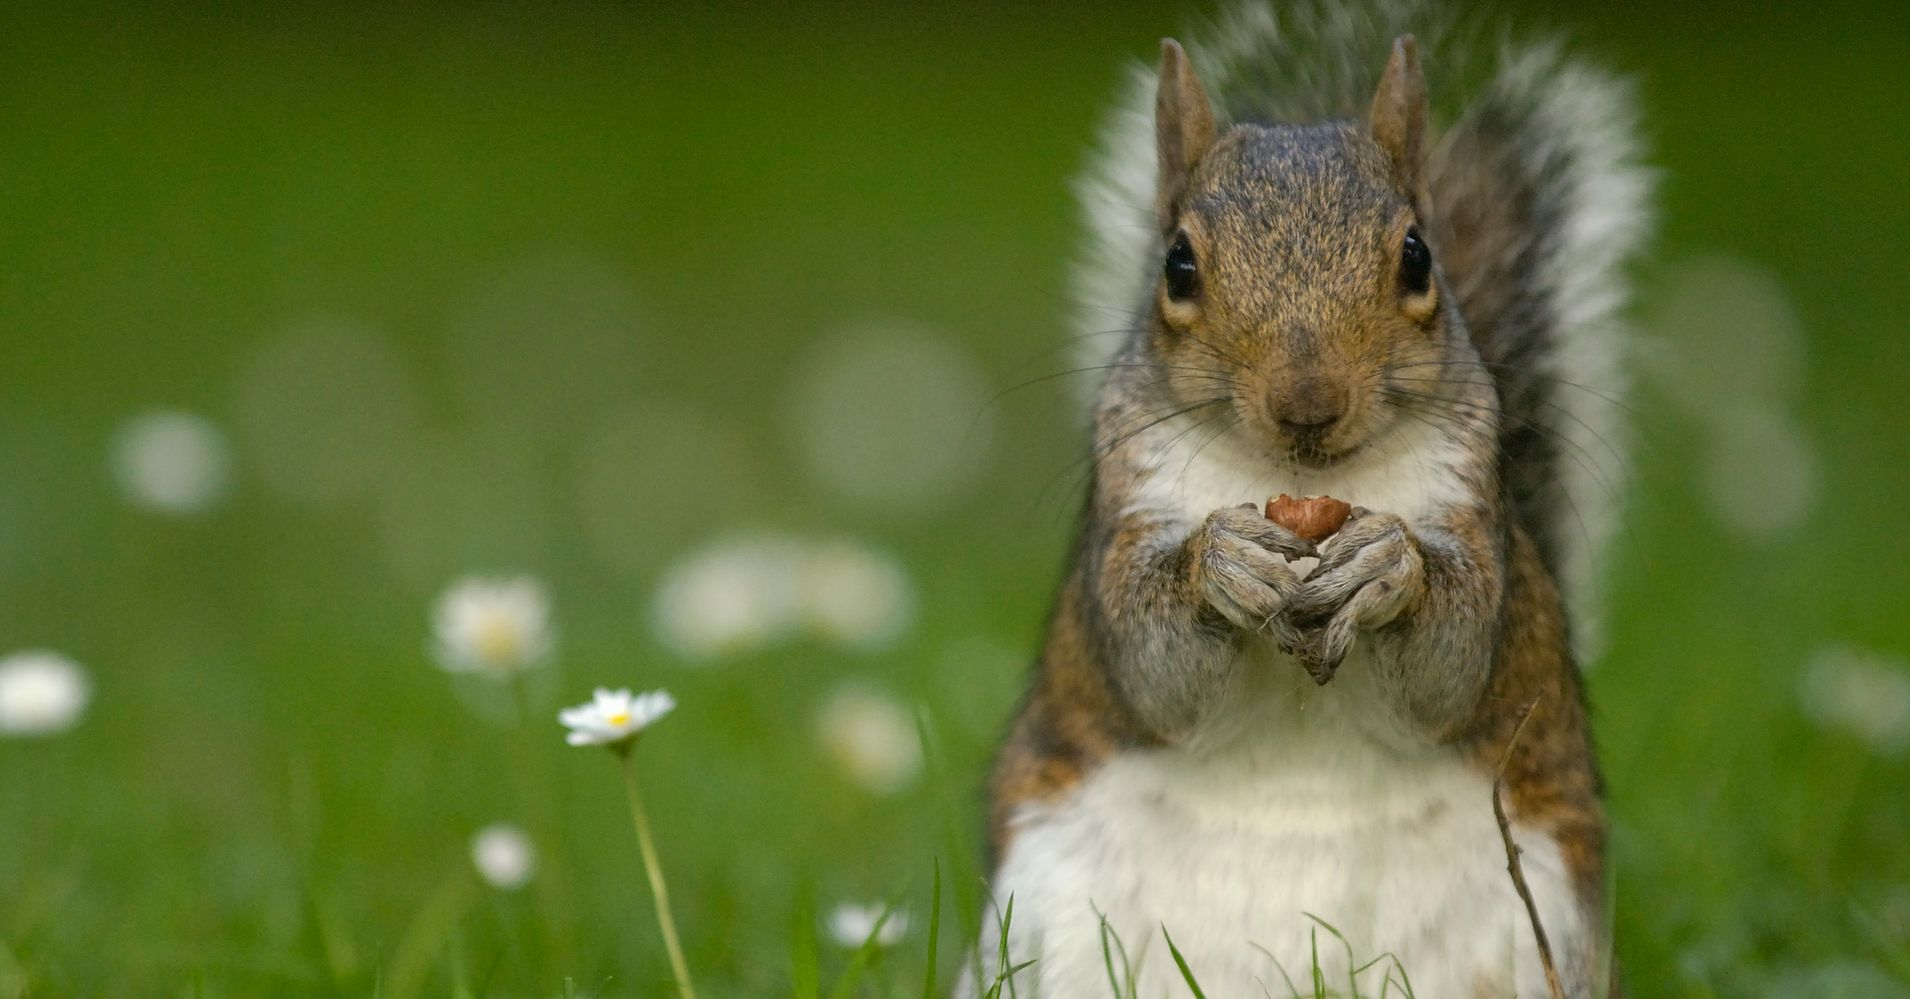 squirrel injures several people in angry rampage at florida senior